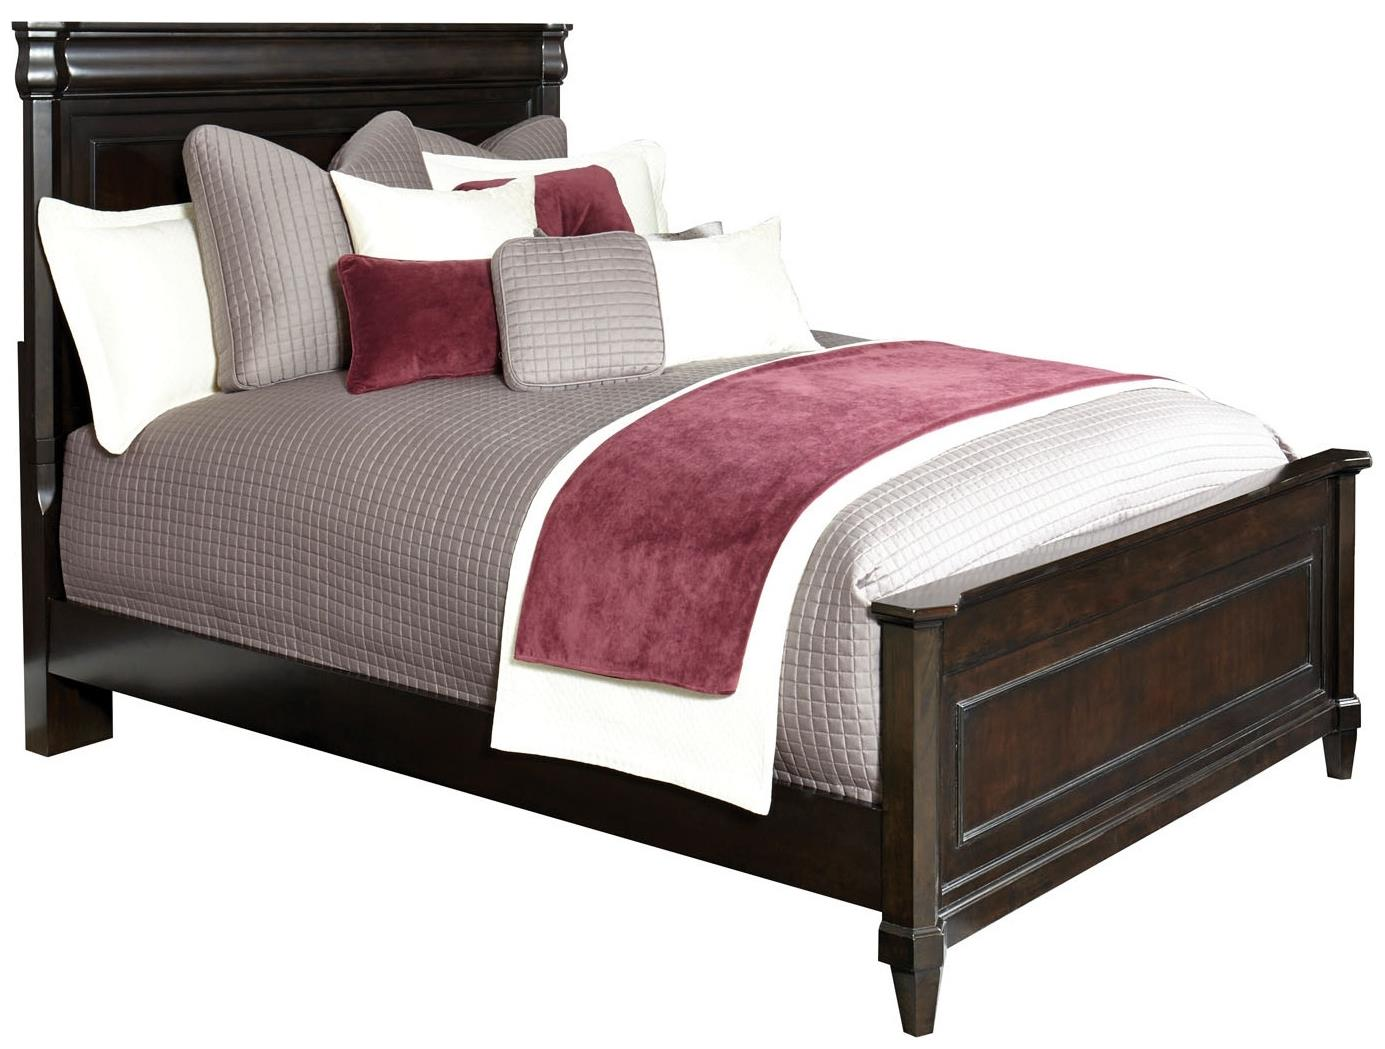 Broyhill Furniture Aryell Queen Panel Bed - Item Number: 4907-250+251+450